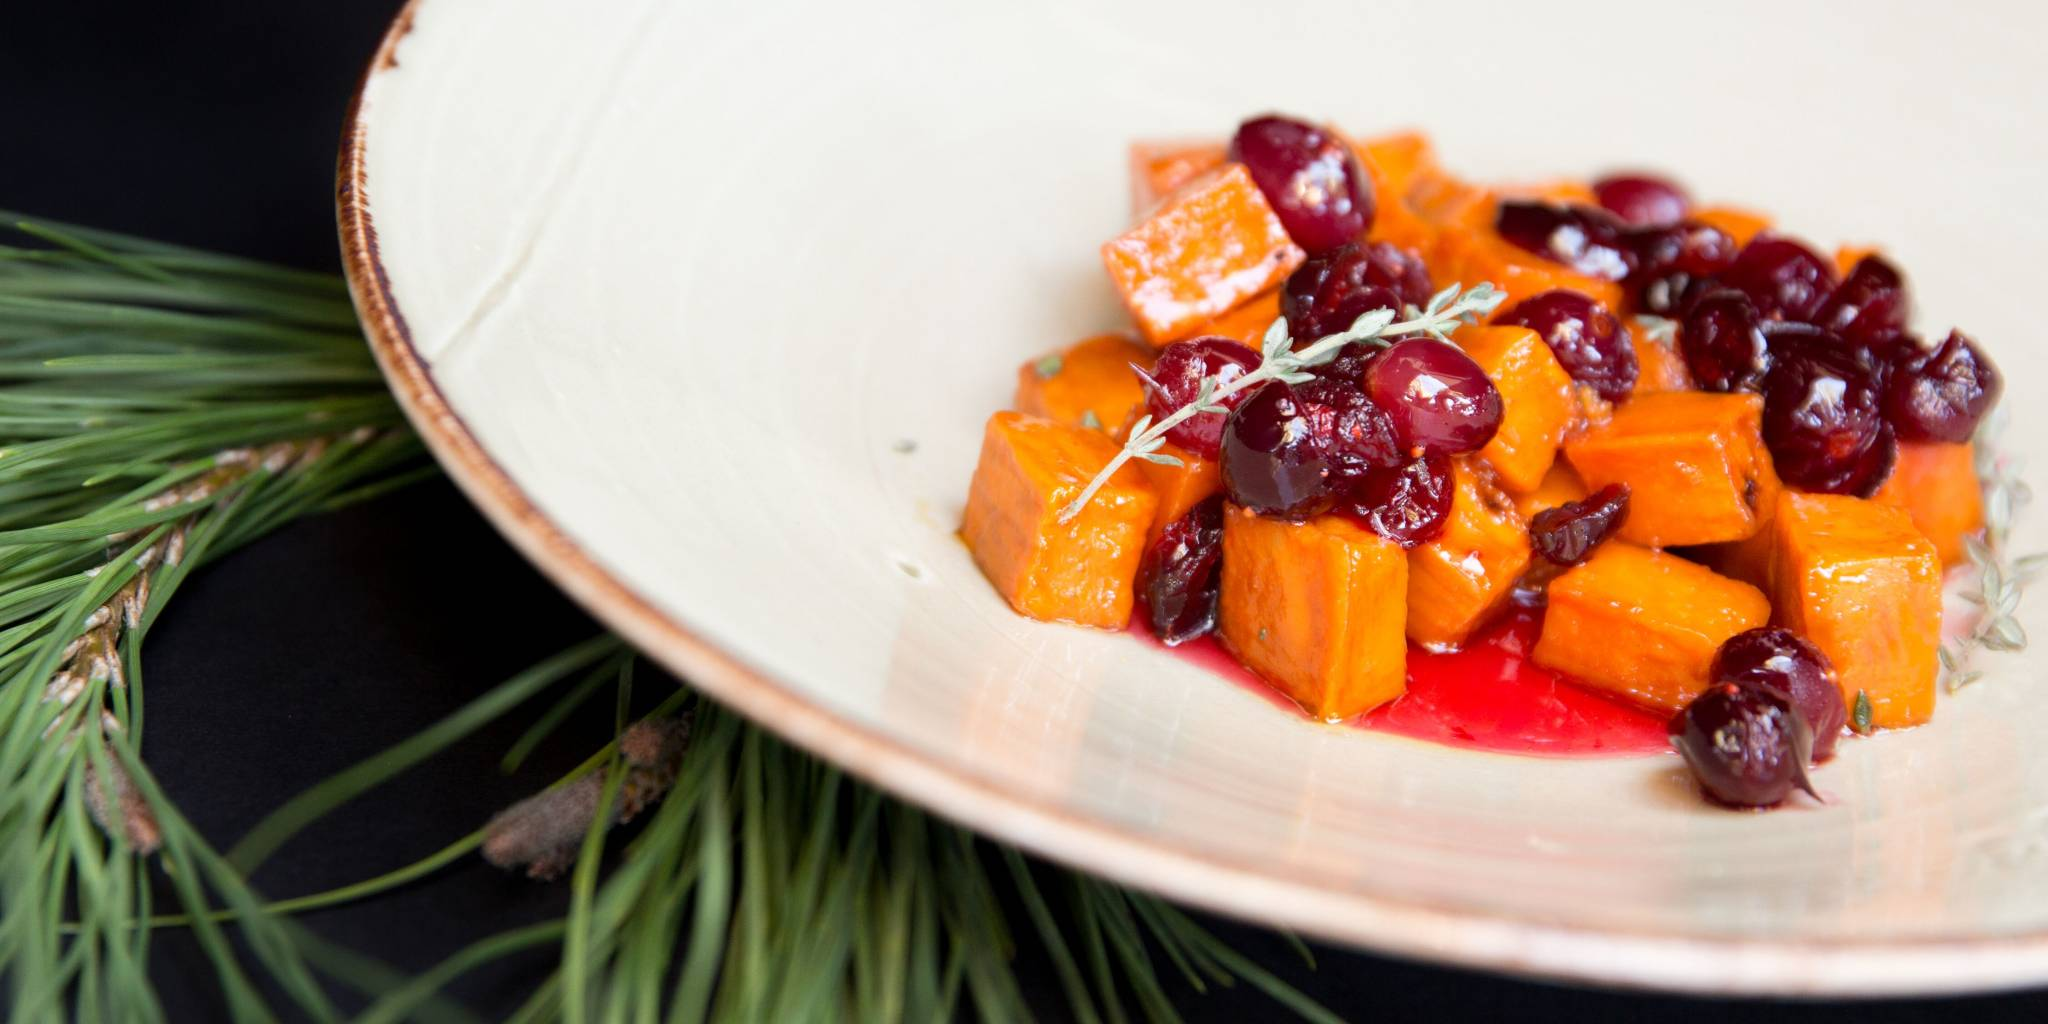 Squash and cranberries with a sprig of rosemary